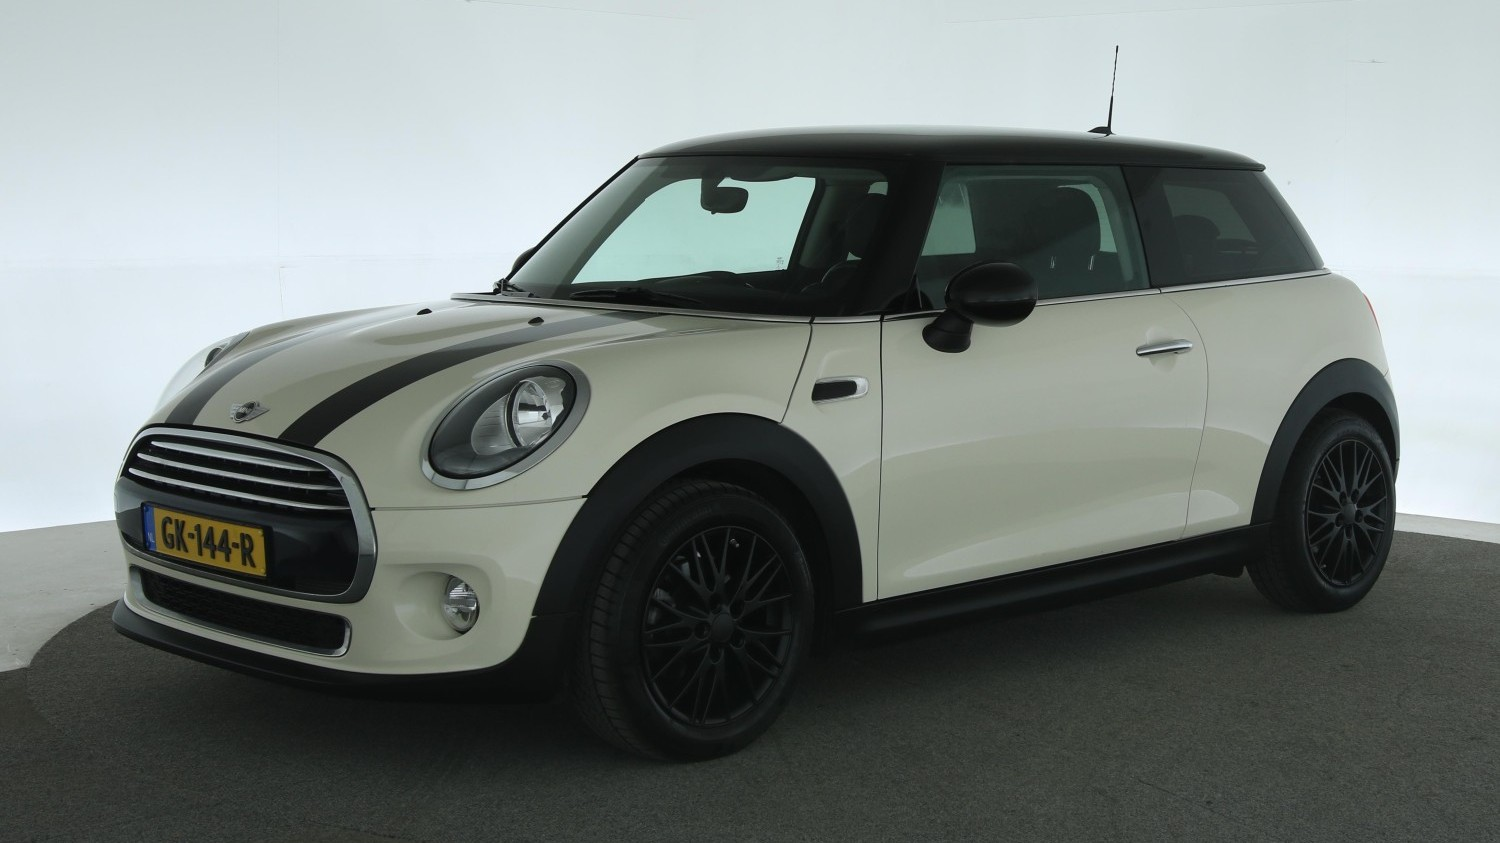 Mini Cooper Hatchback 2015 GK-144-R 1